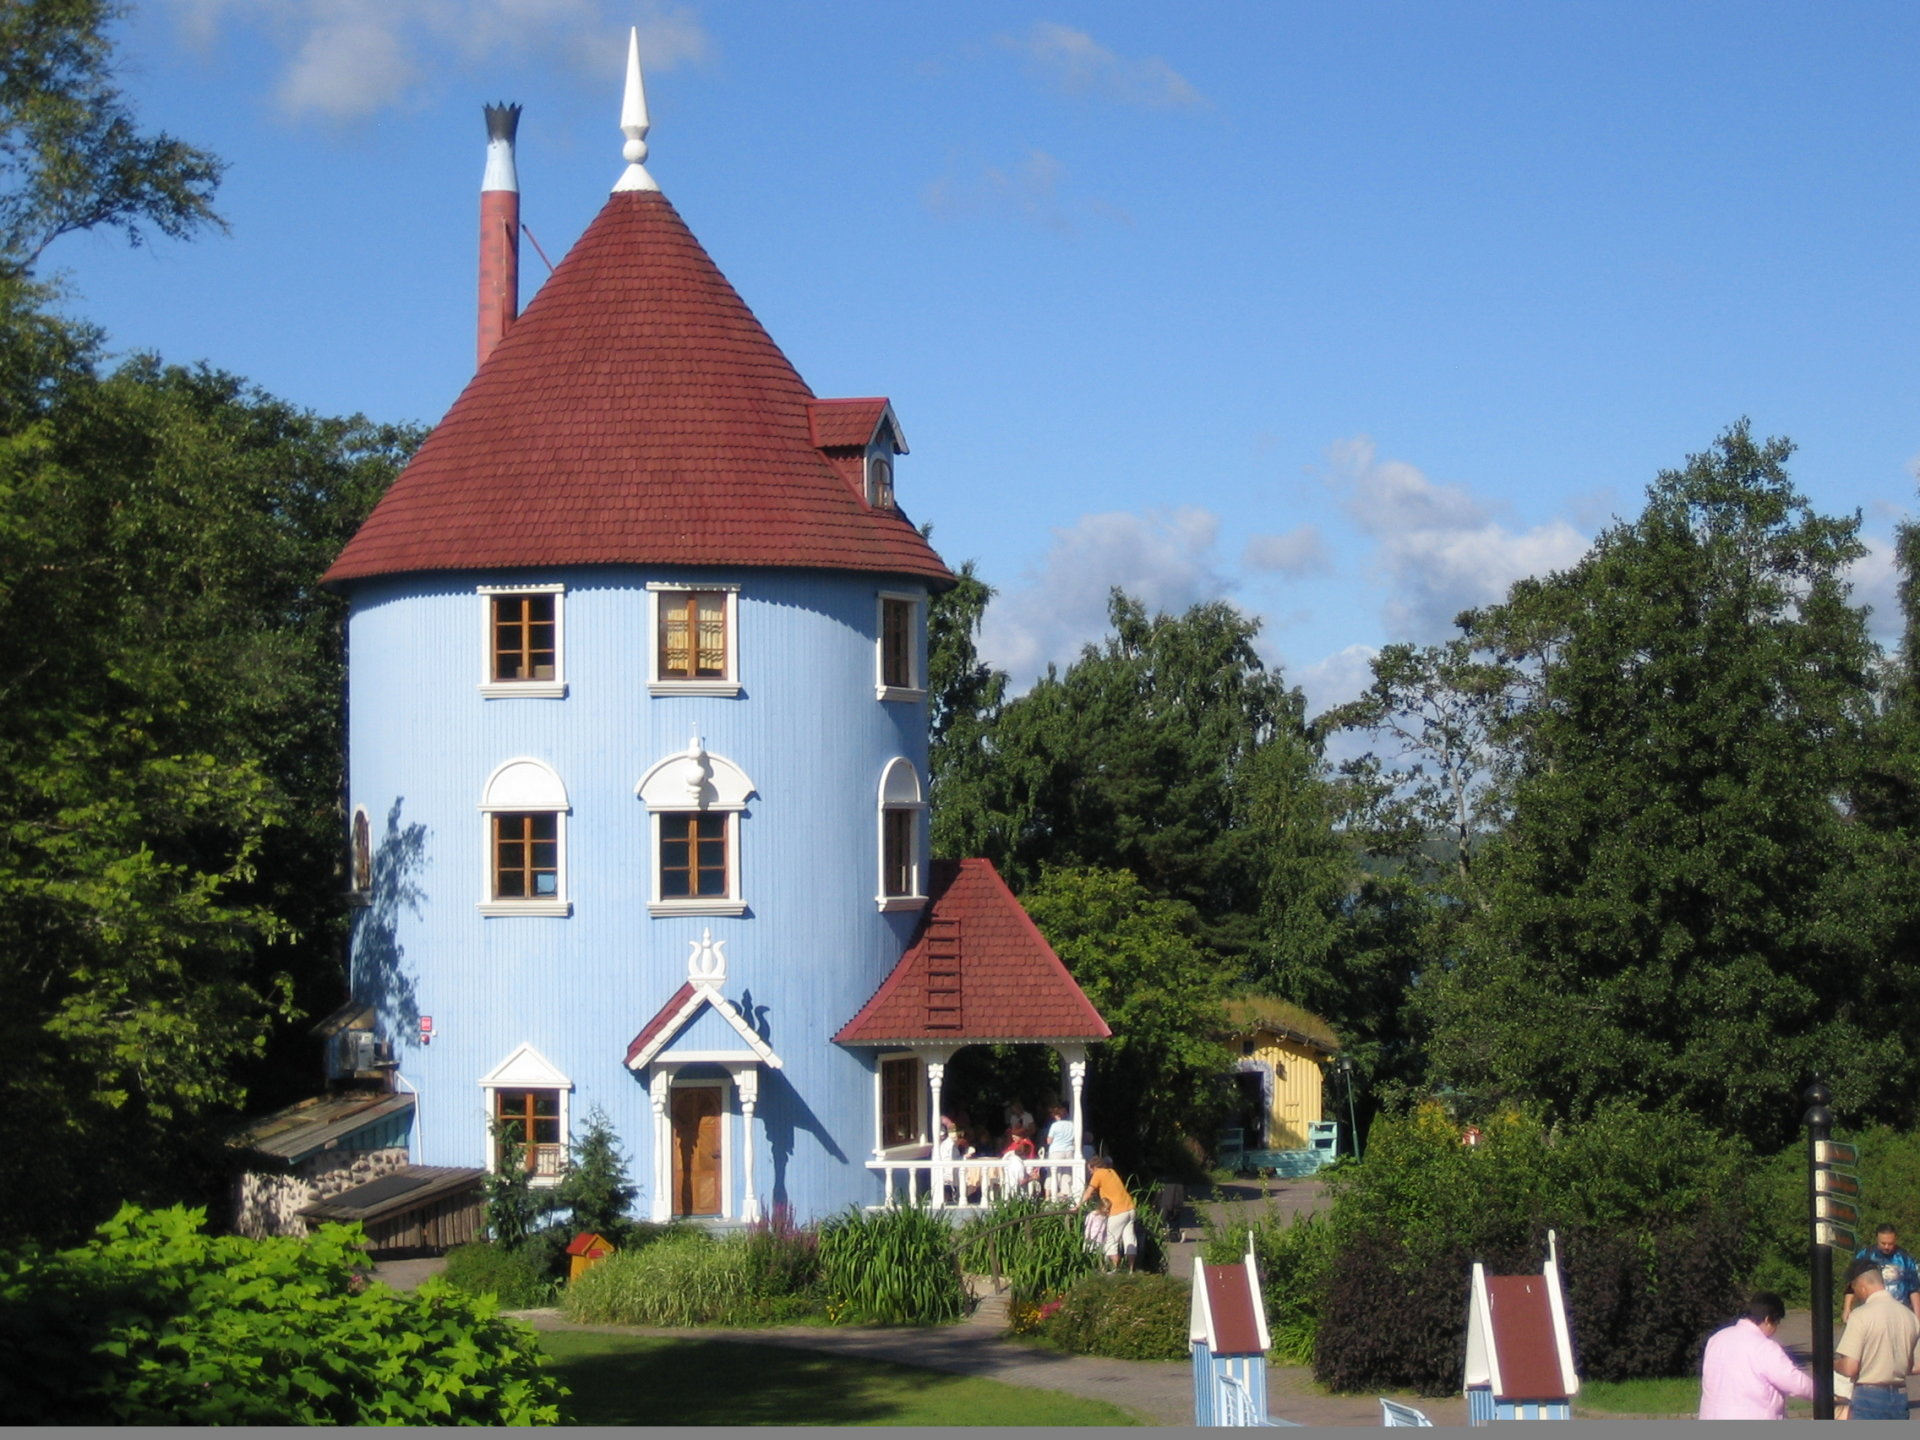 Moomin World and Moomin Place in Finland - Best Season 2020